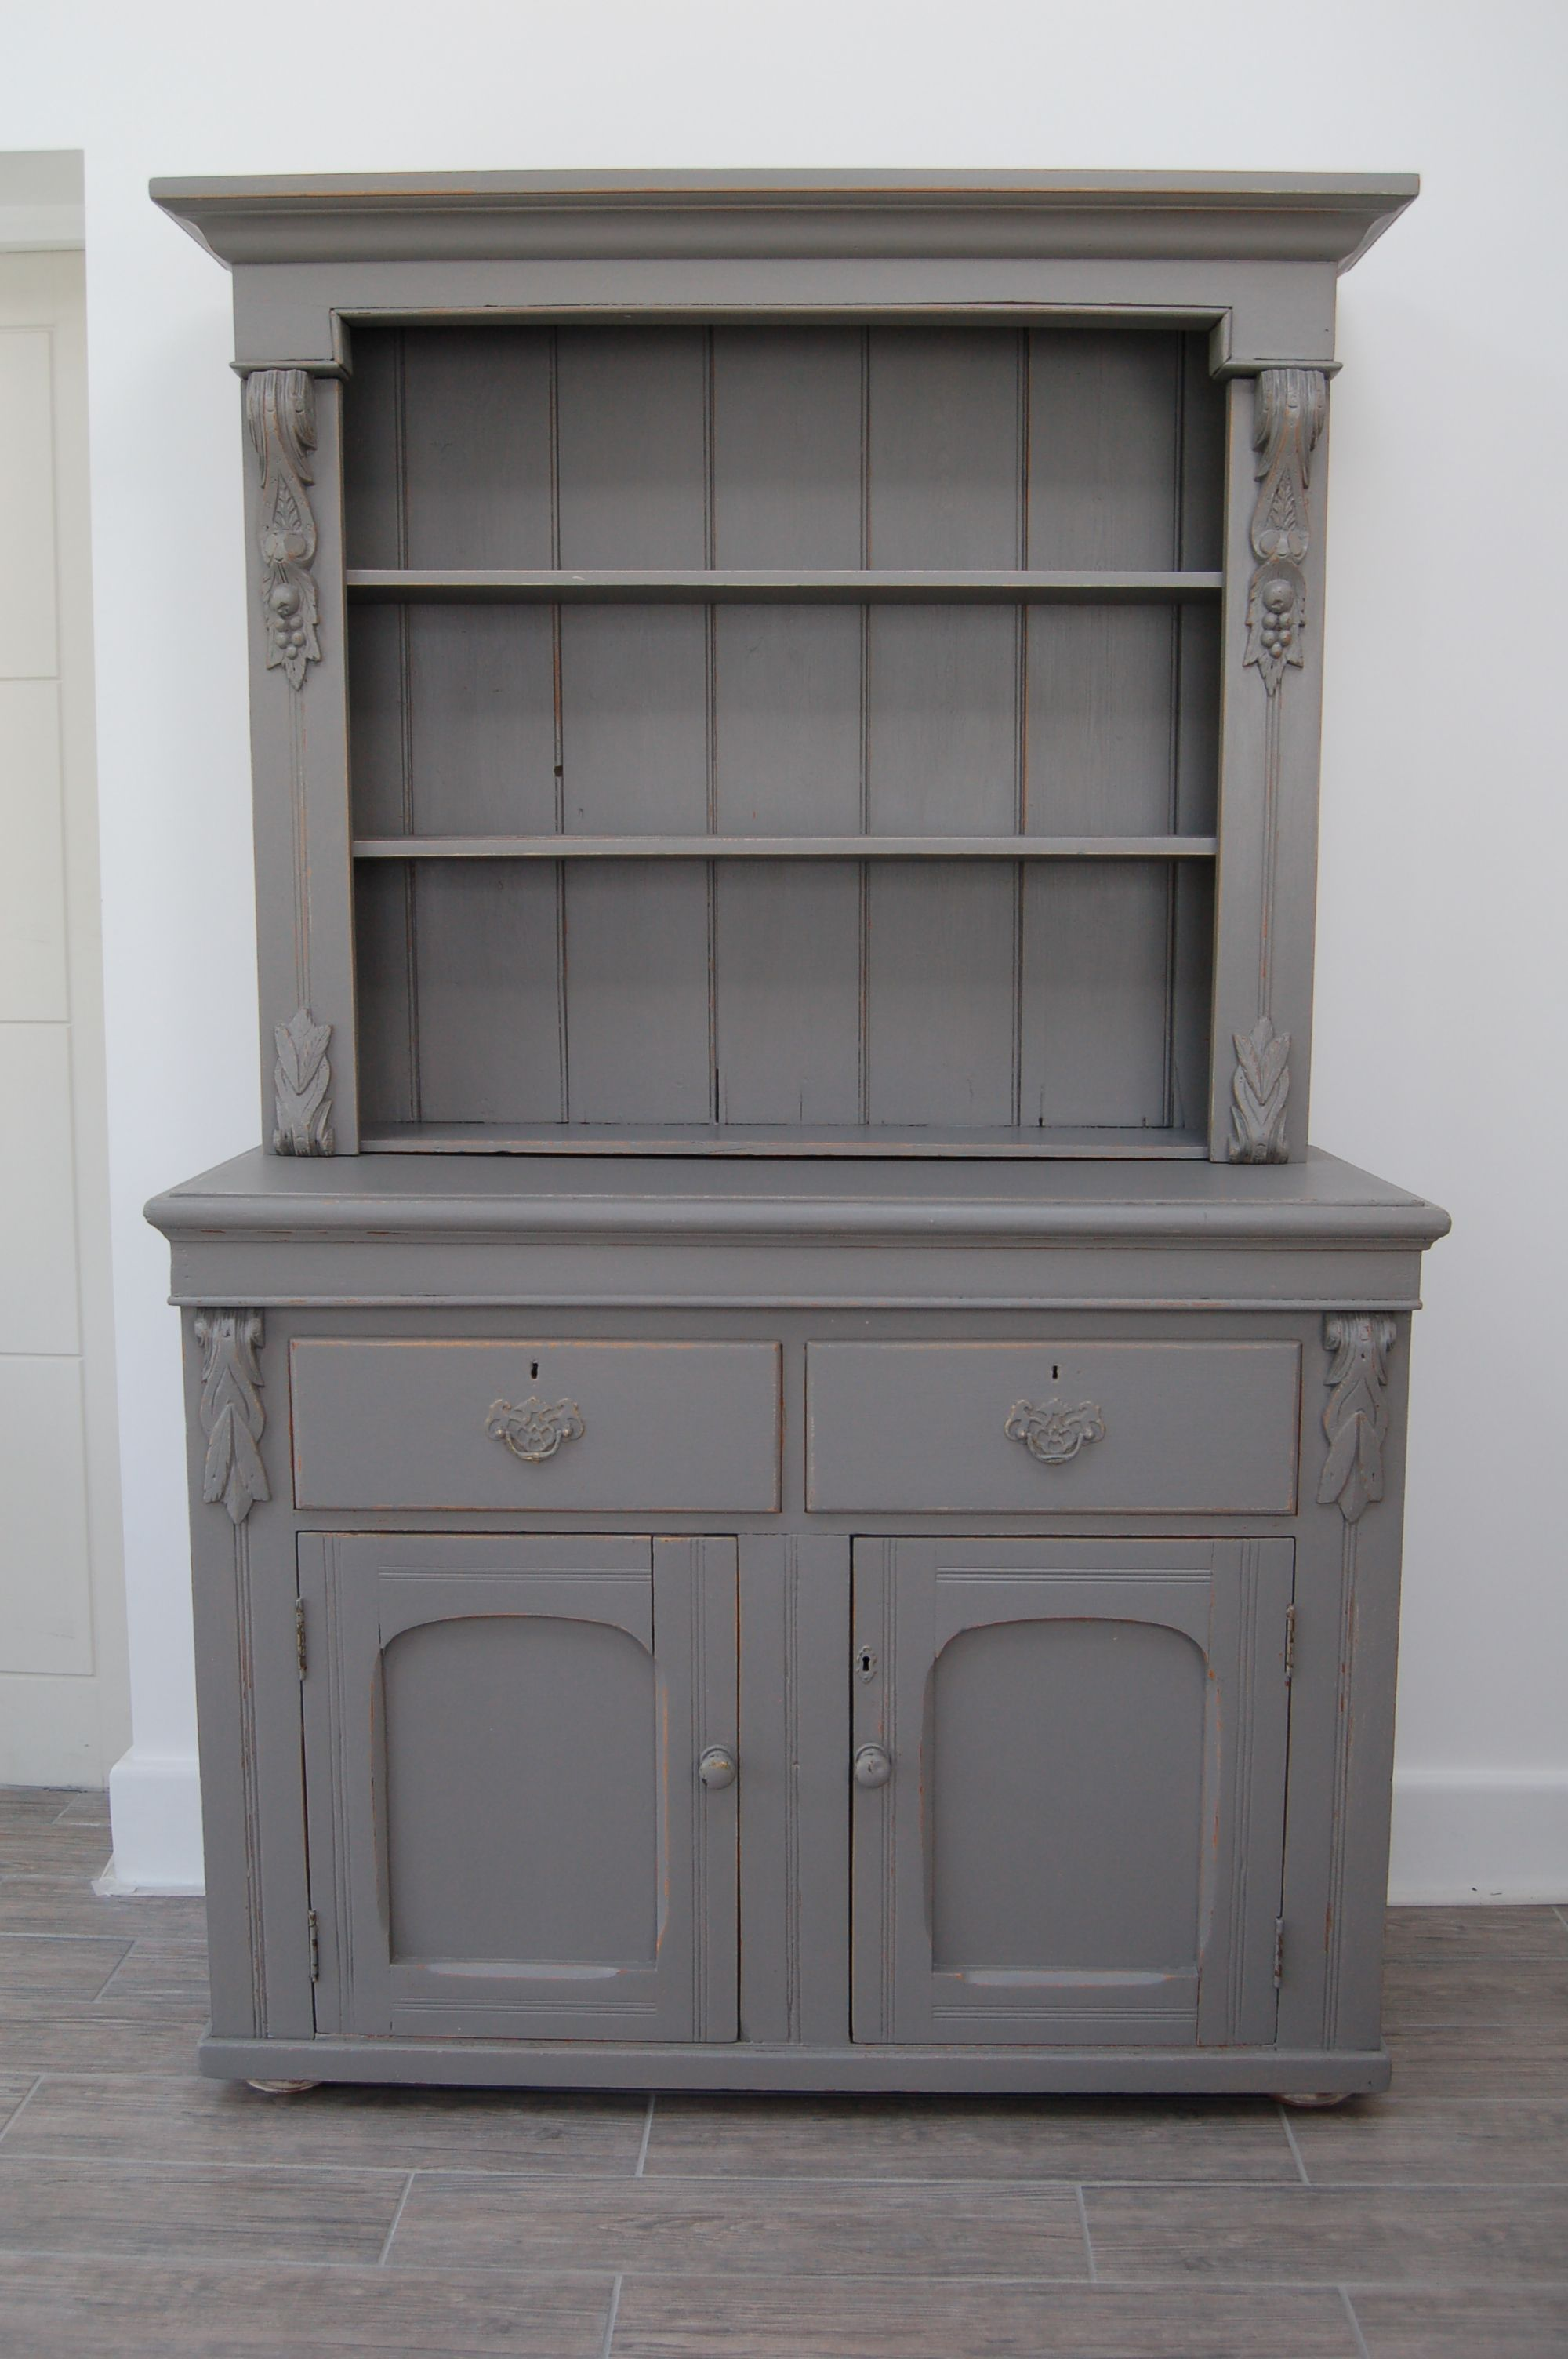 Best Dresser Hand Painted And Distressed In F B Moles Breath 640 x 480